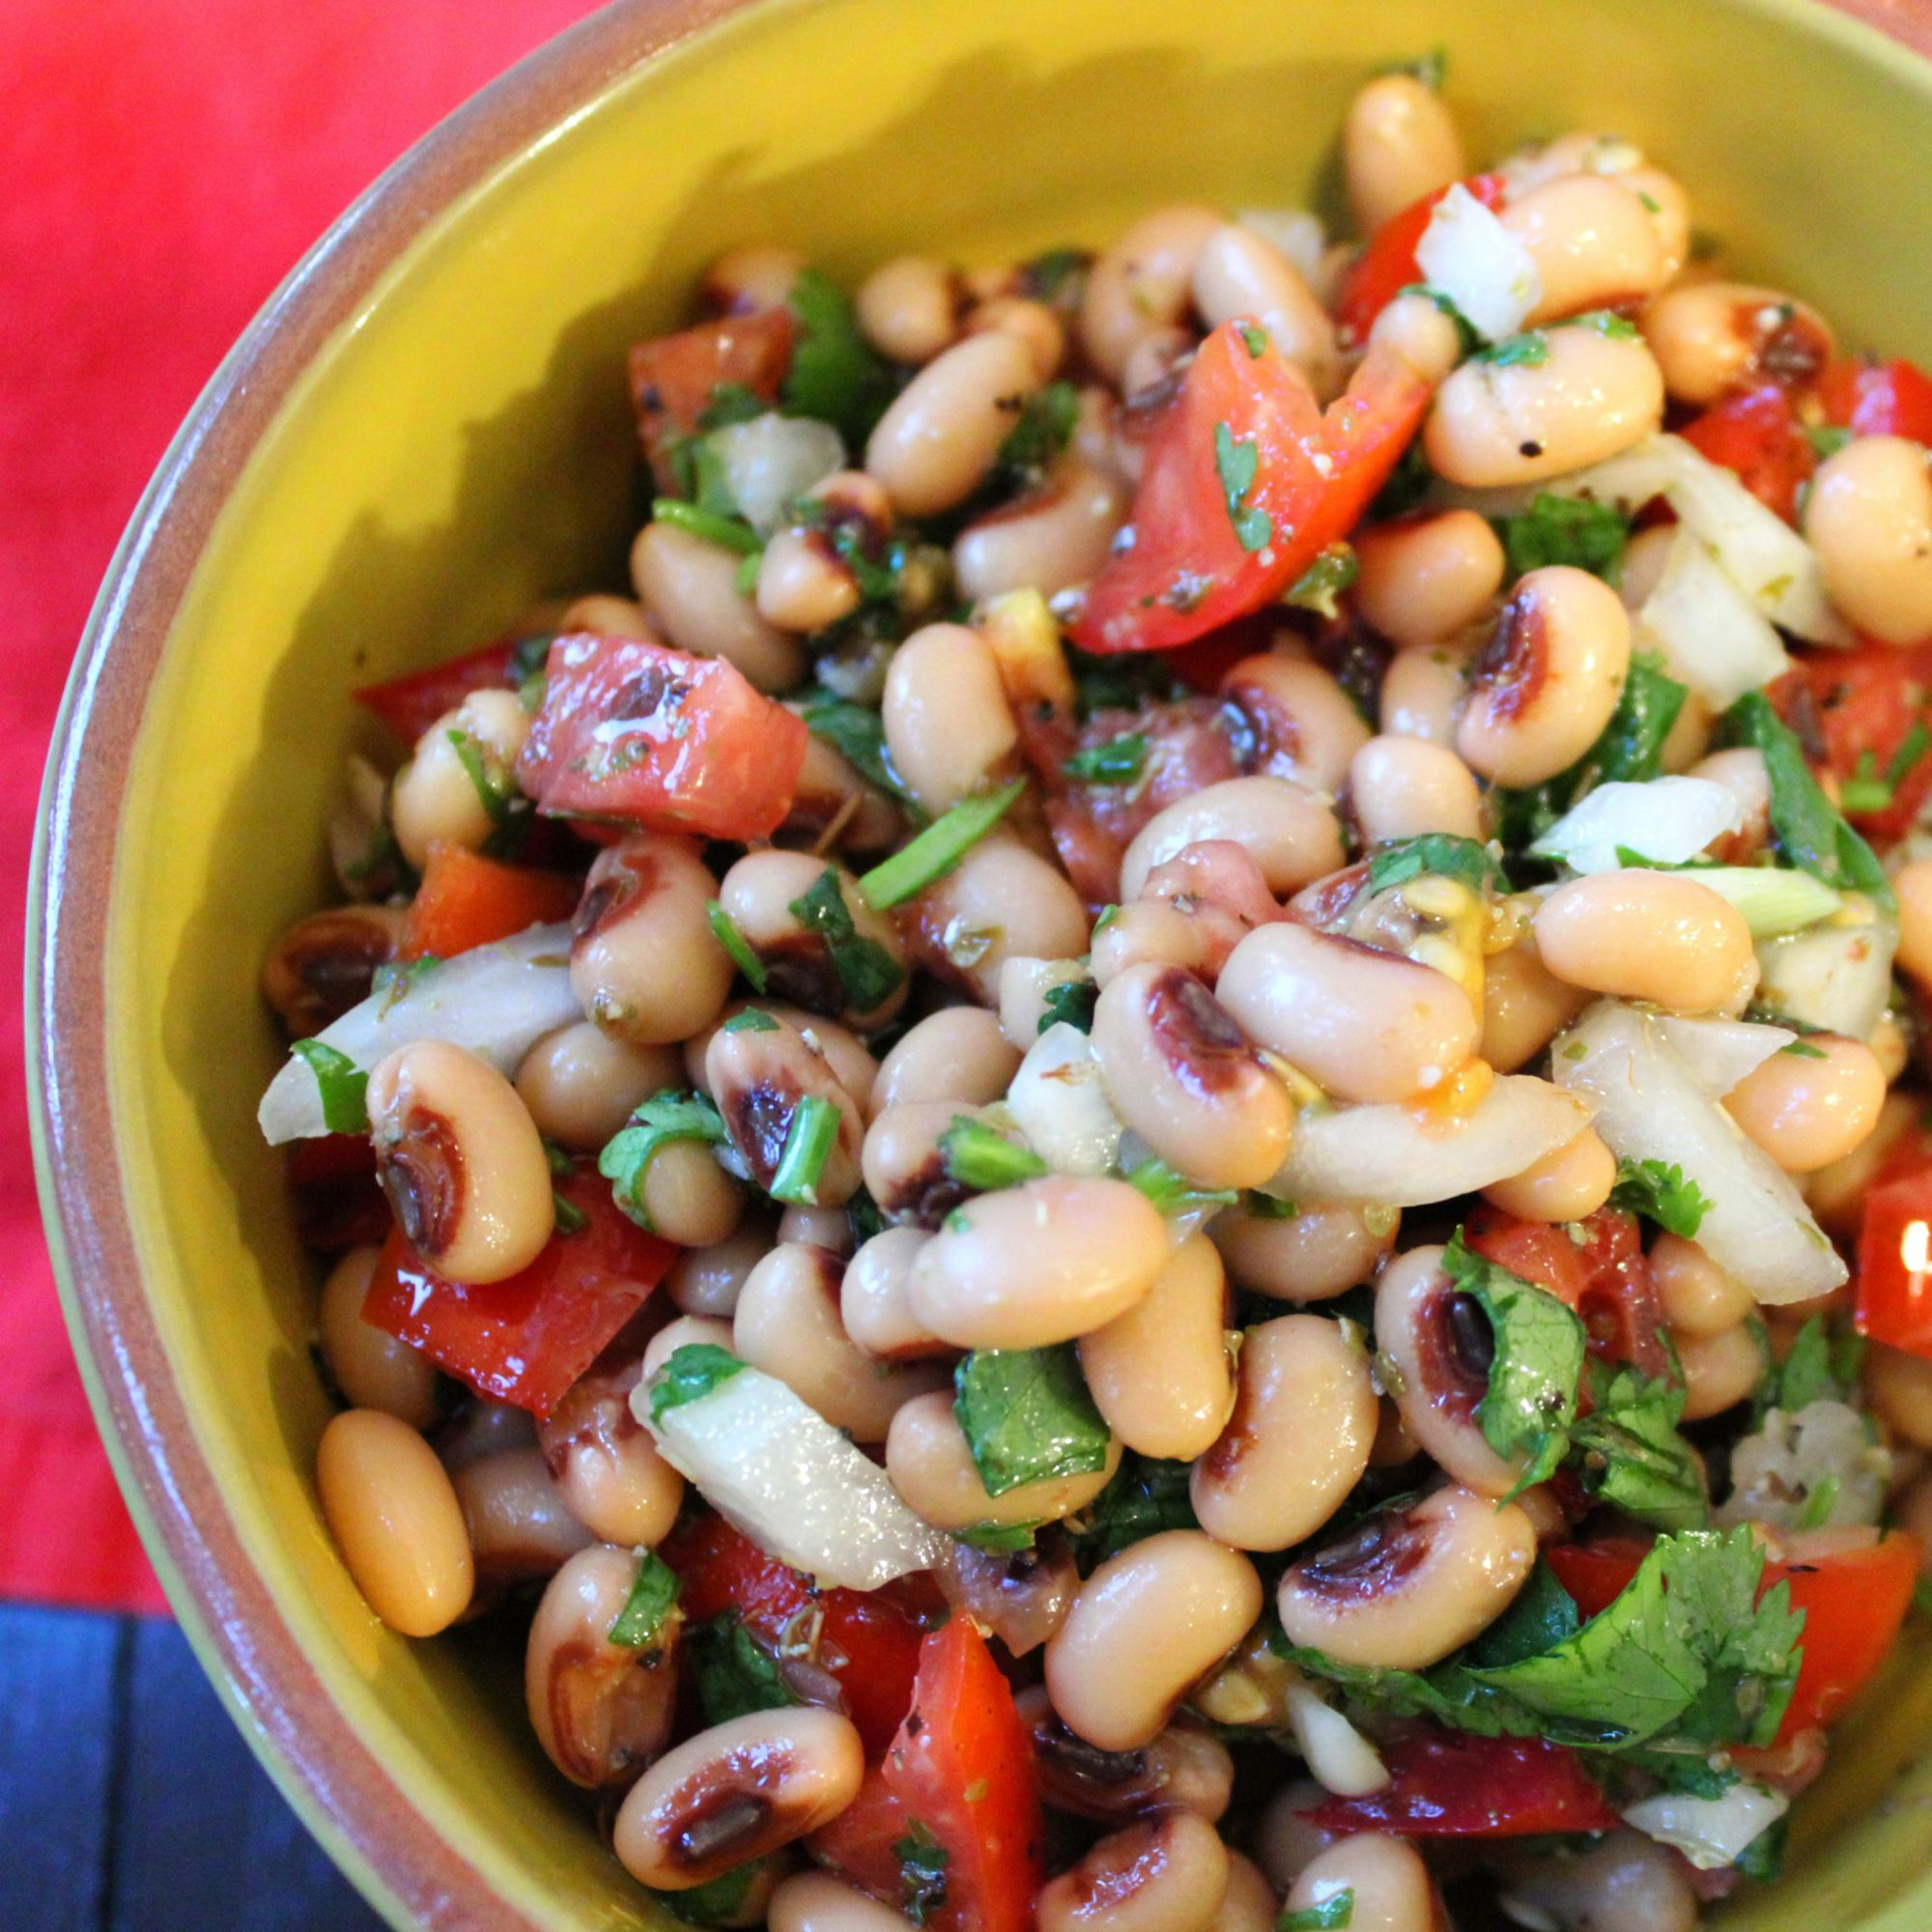 Vegan Black Eyed Pea Salad with Cilantro in a yellow bowl